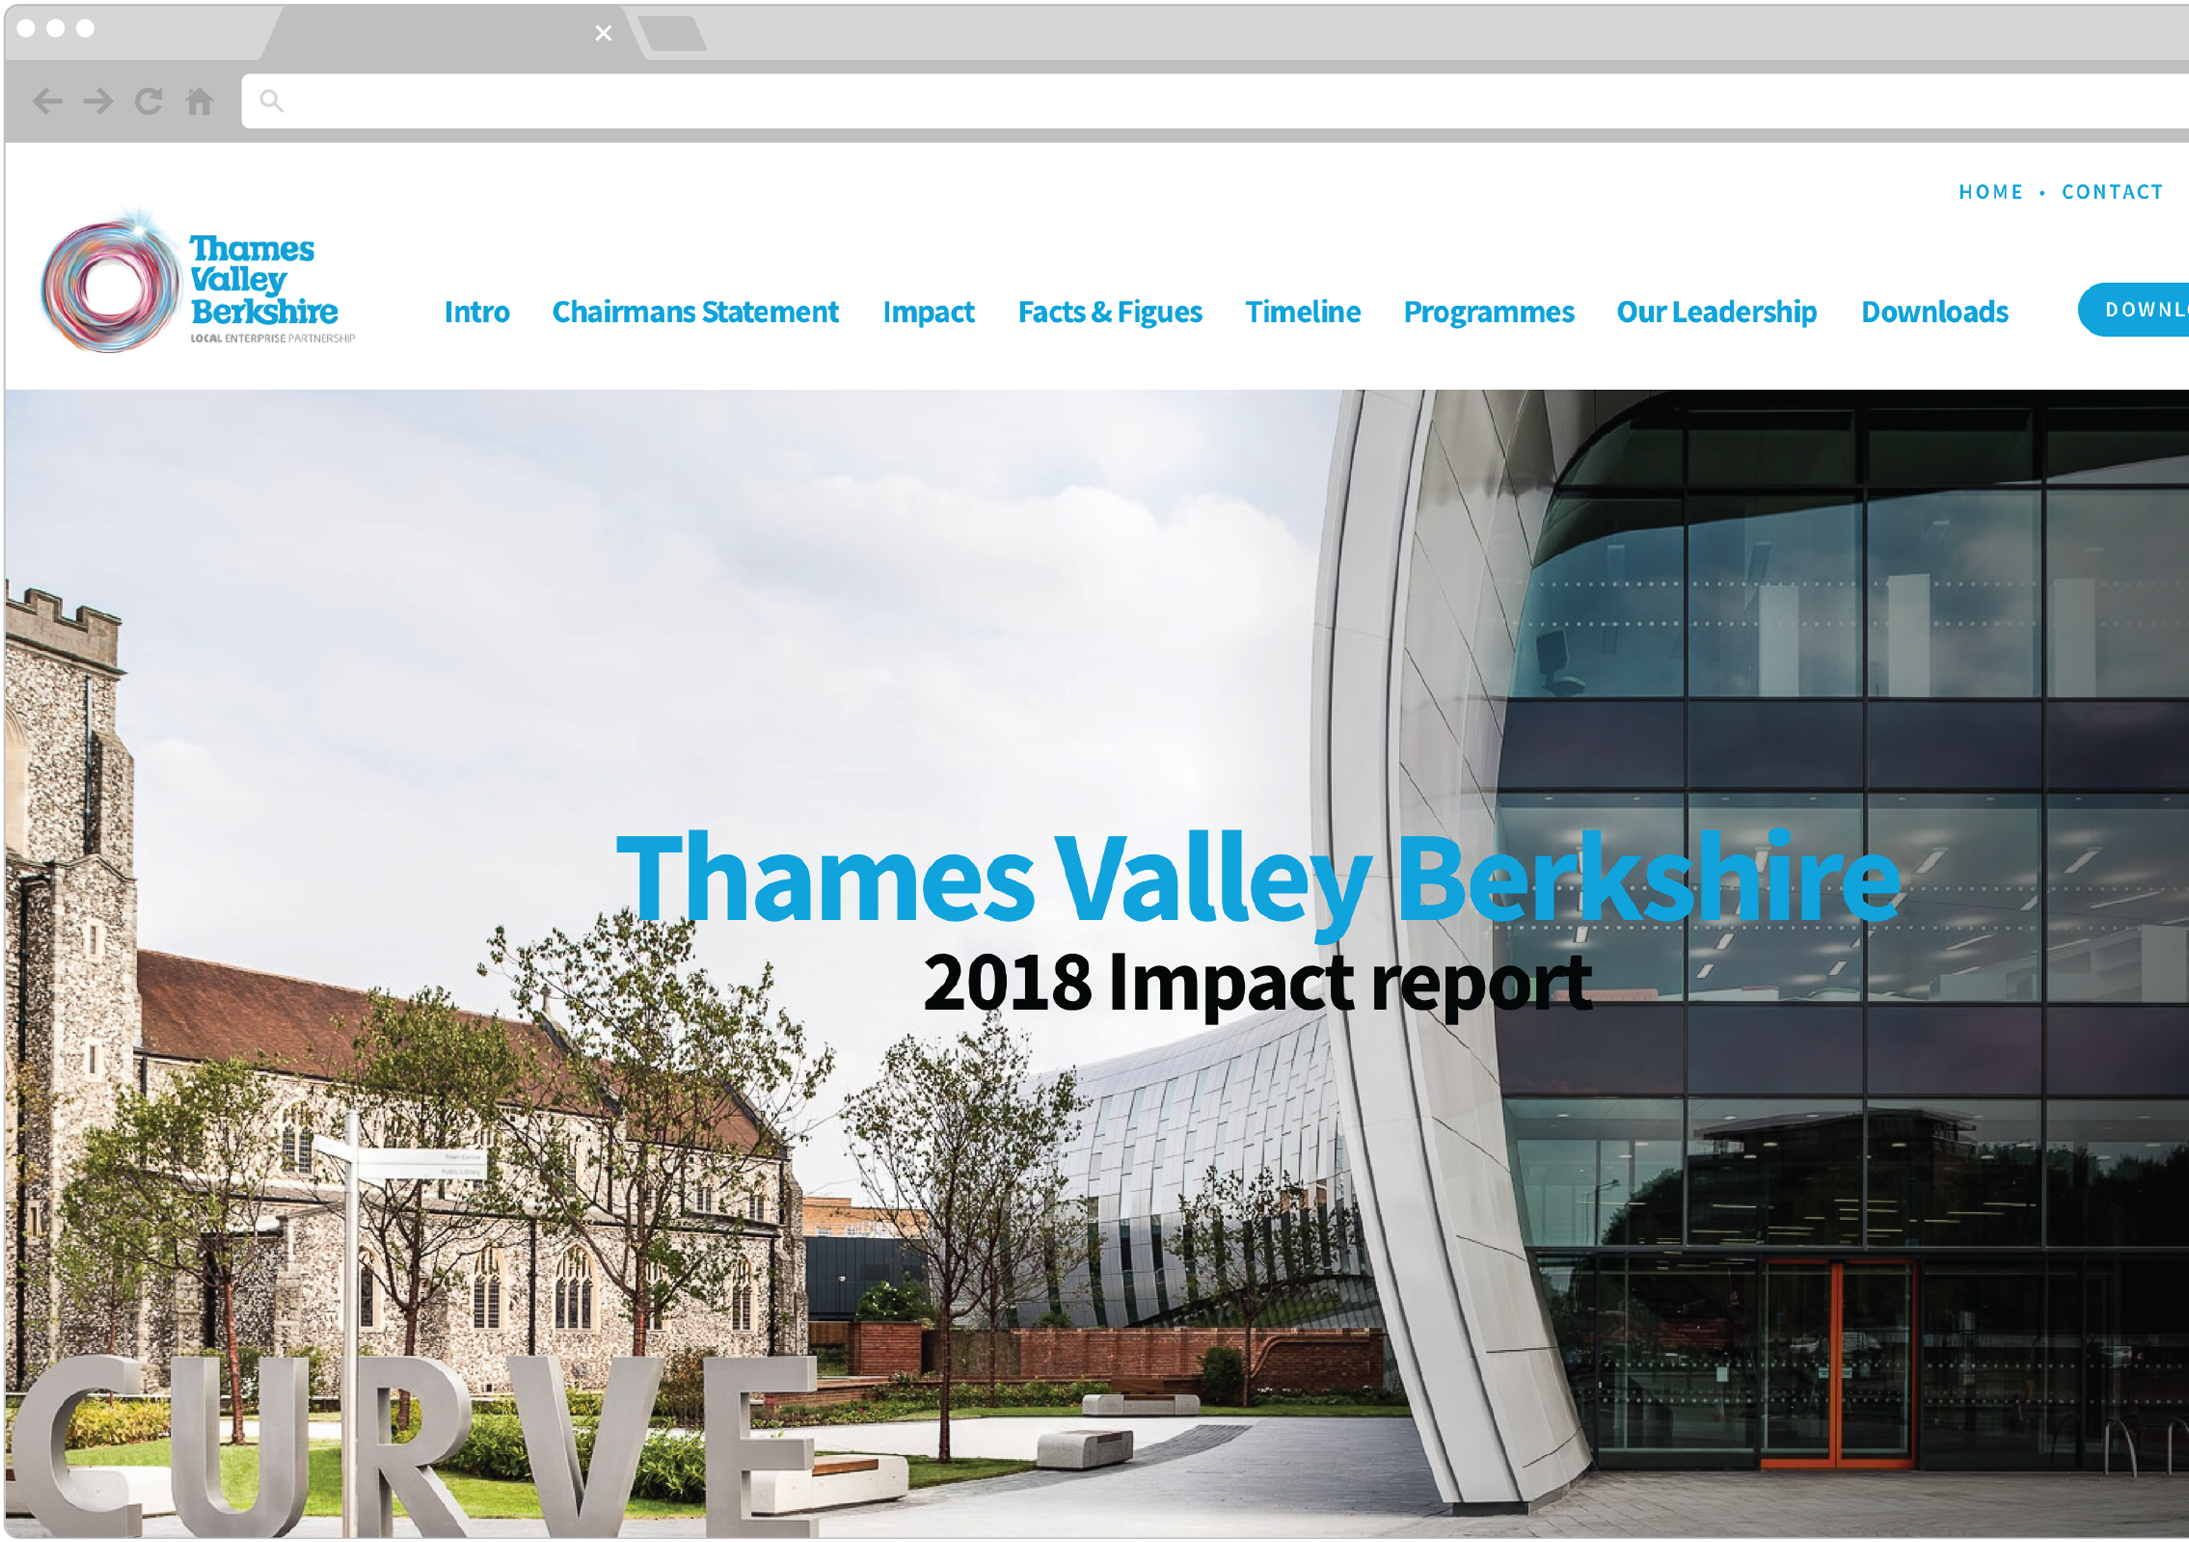 Thames Valley Berkshire Impact Report Website